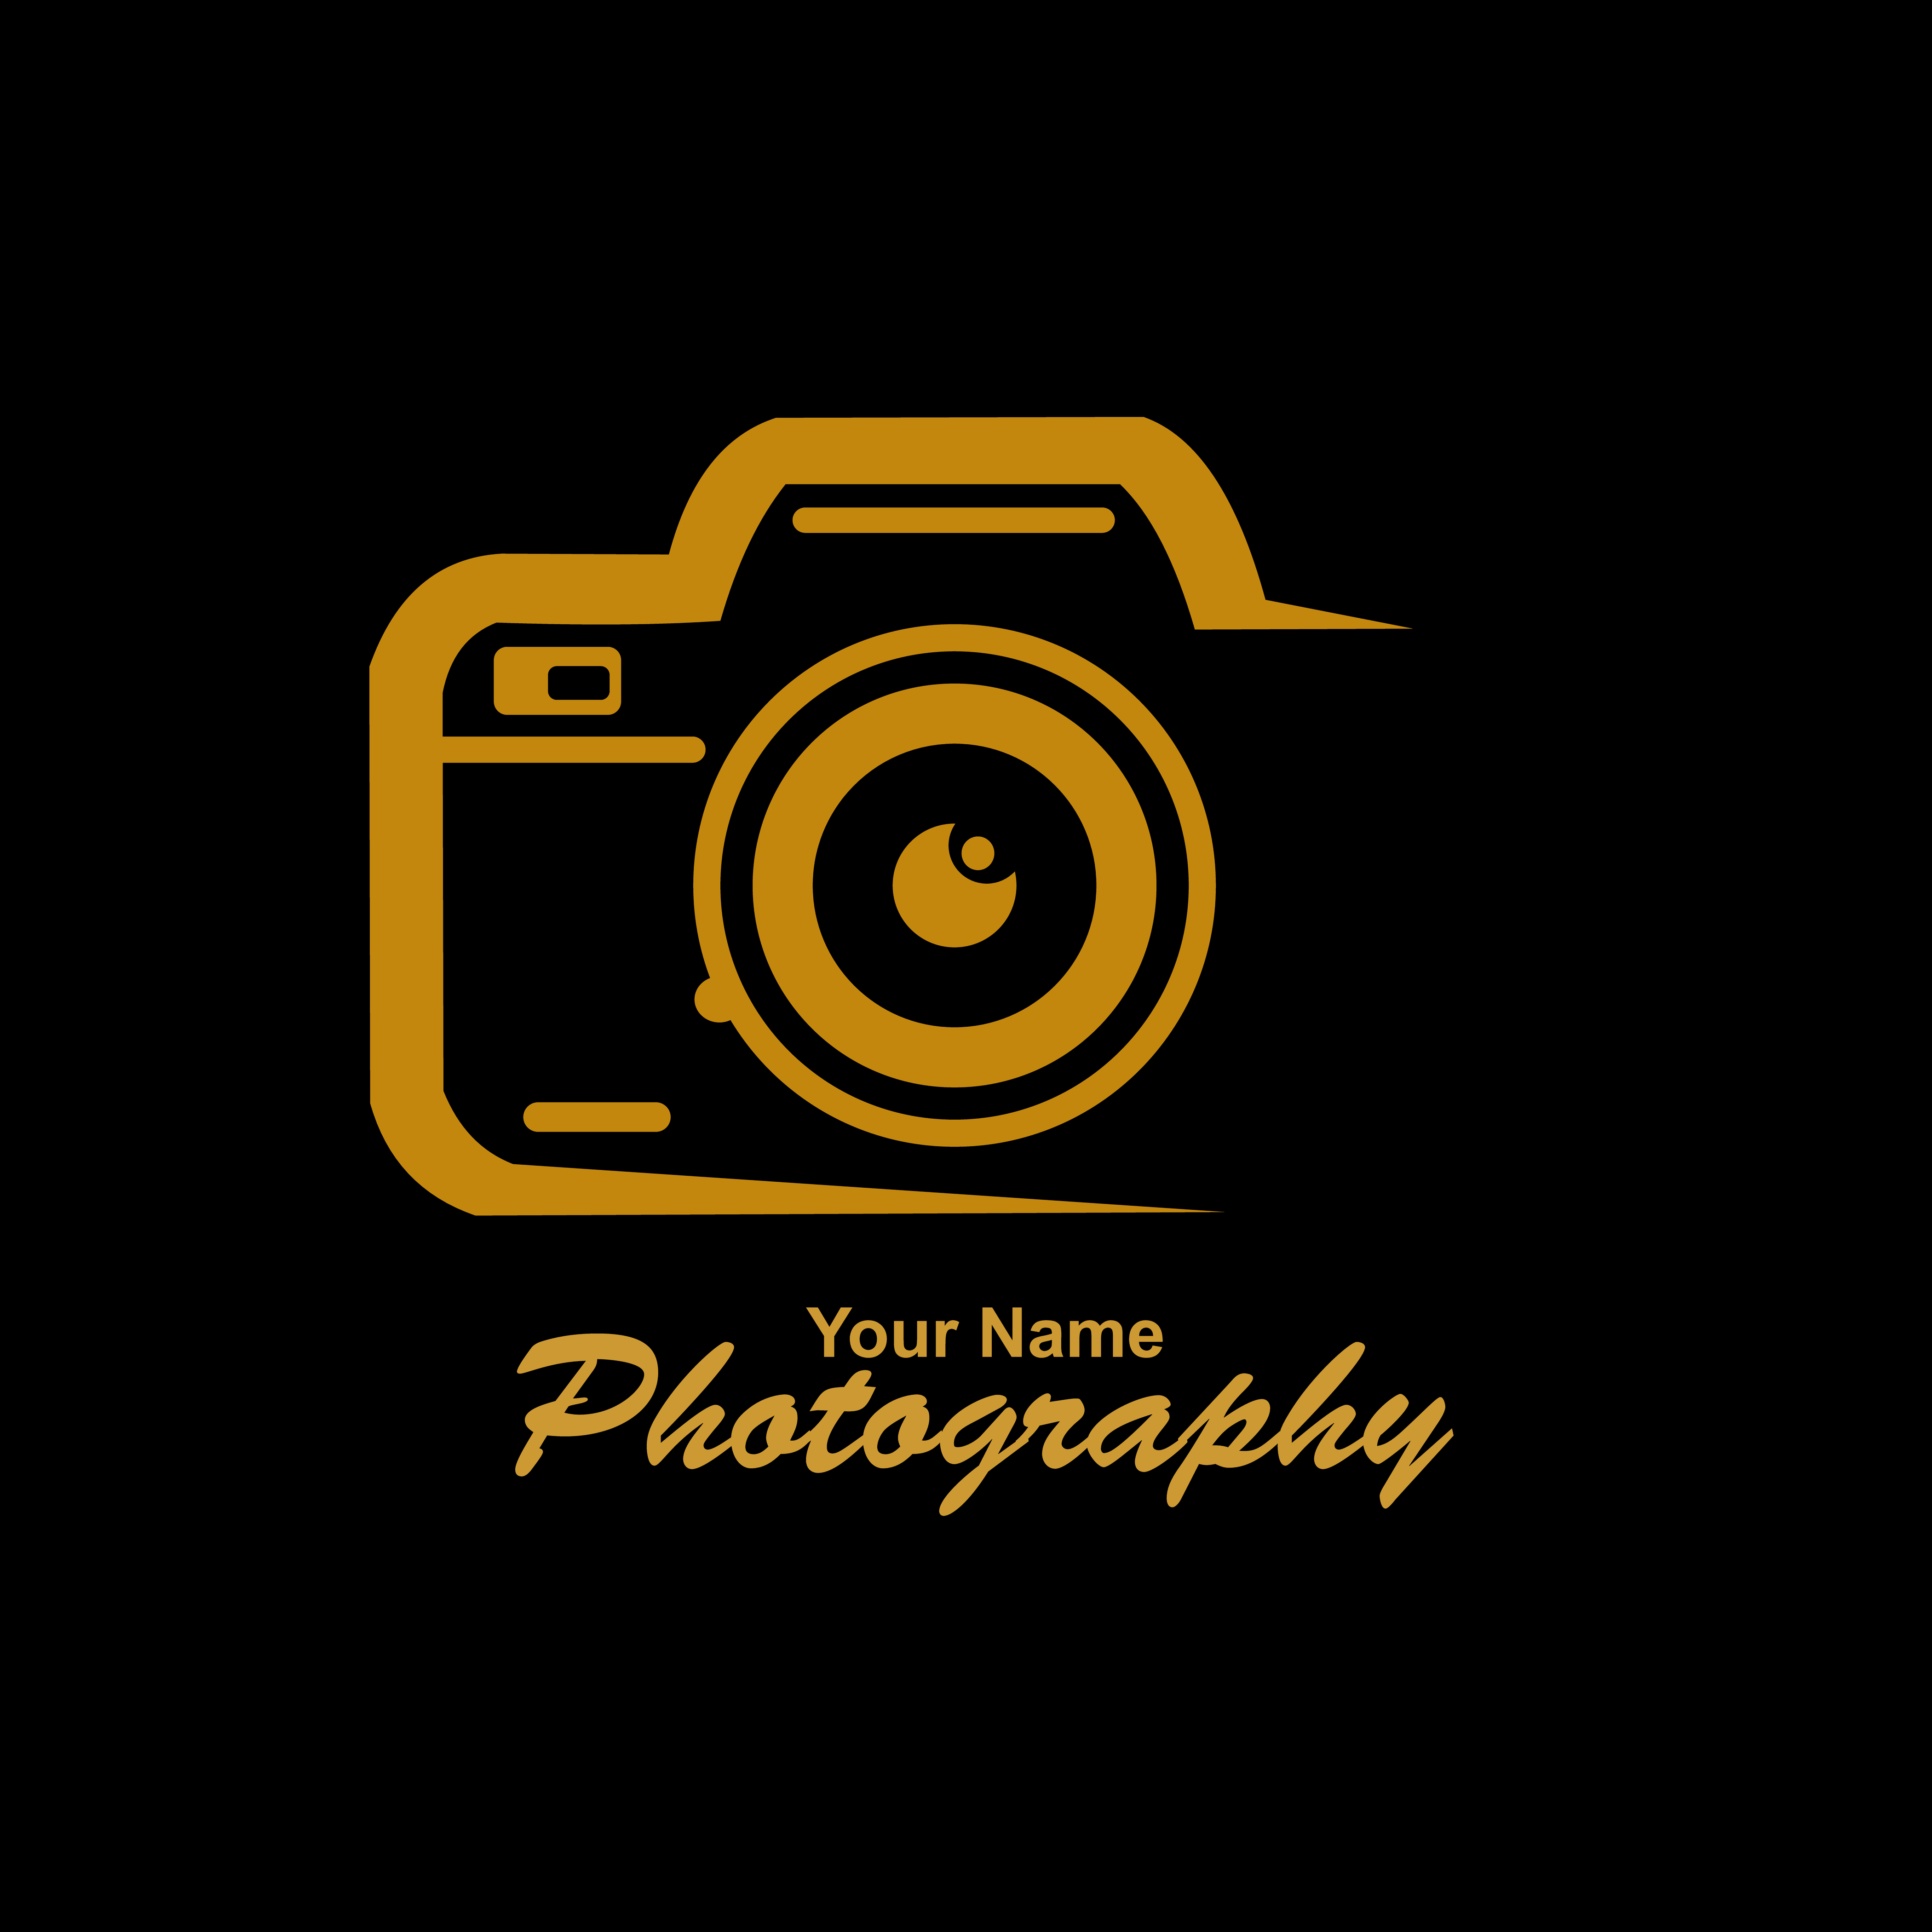 Add Text To Make Images Look More Professional When You Add Logo To Photo